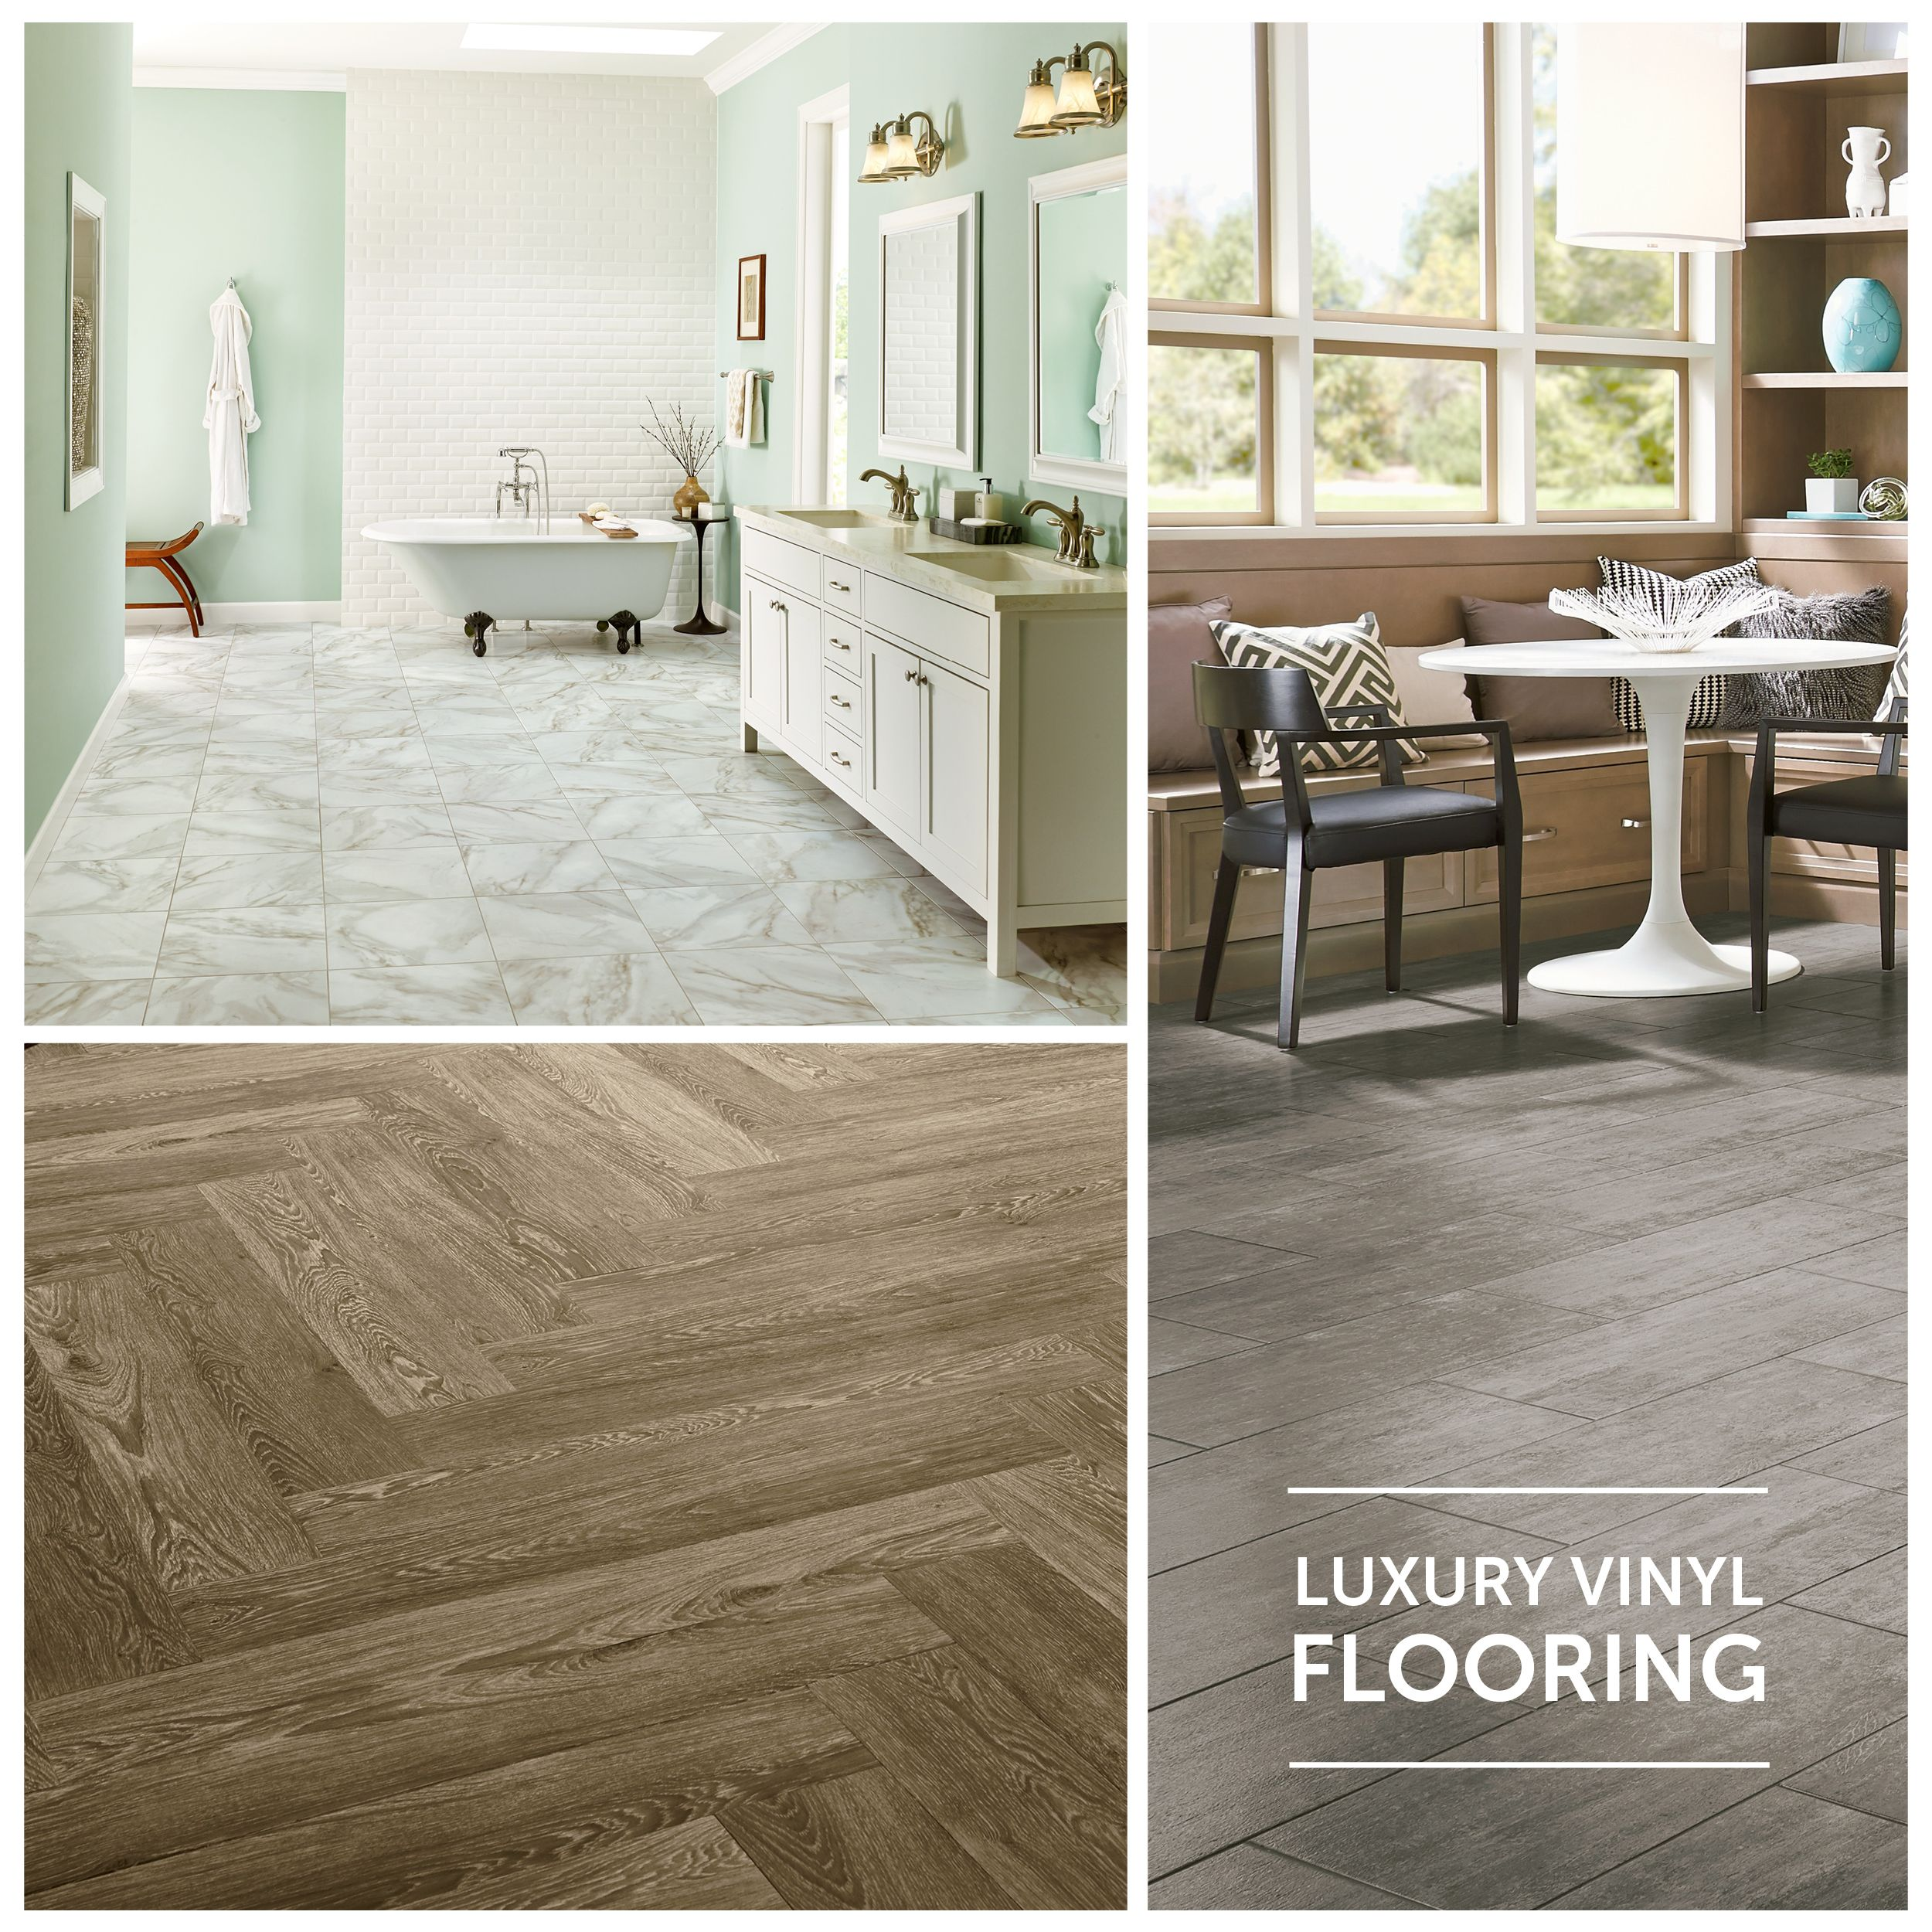 Luxury vinyl flooring stone wood looks lvt lvp for Luxury linoleum flooring